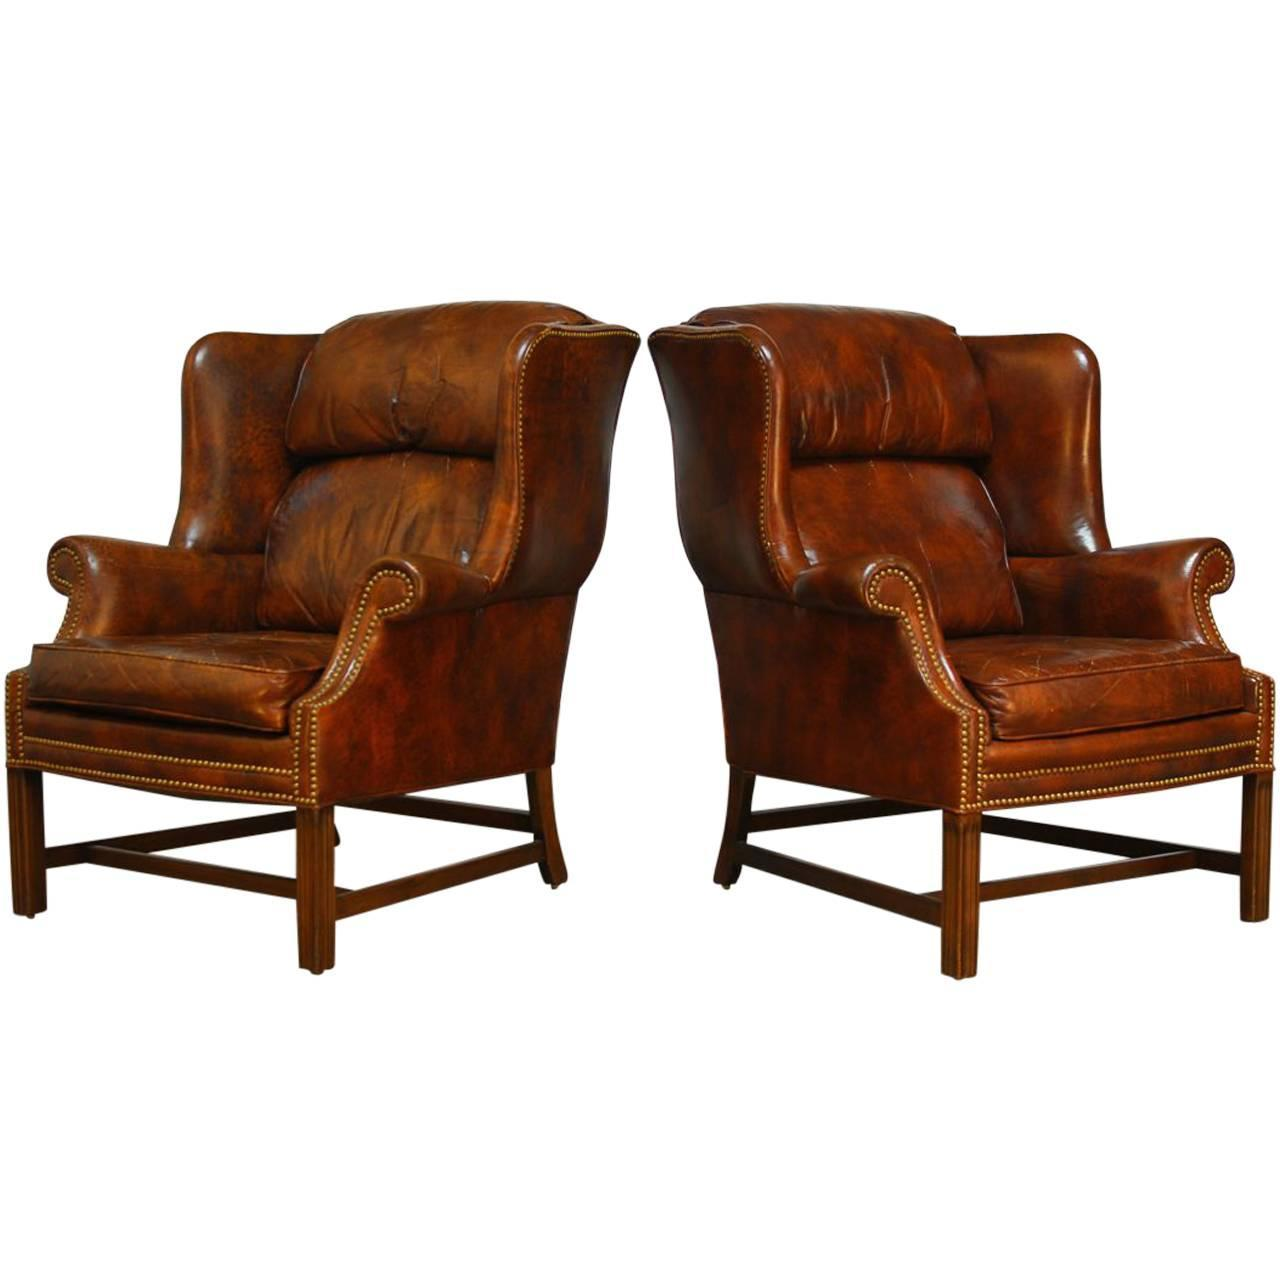 Charmant Pair Of Marbled Leather Wingback Chairs By Schafer Bros At 1stdibs